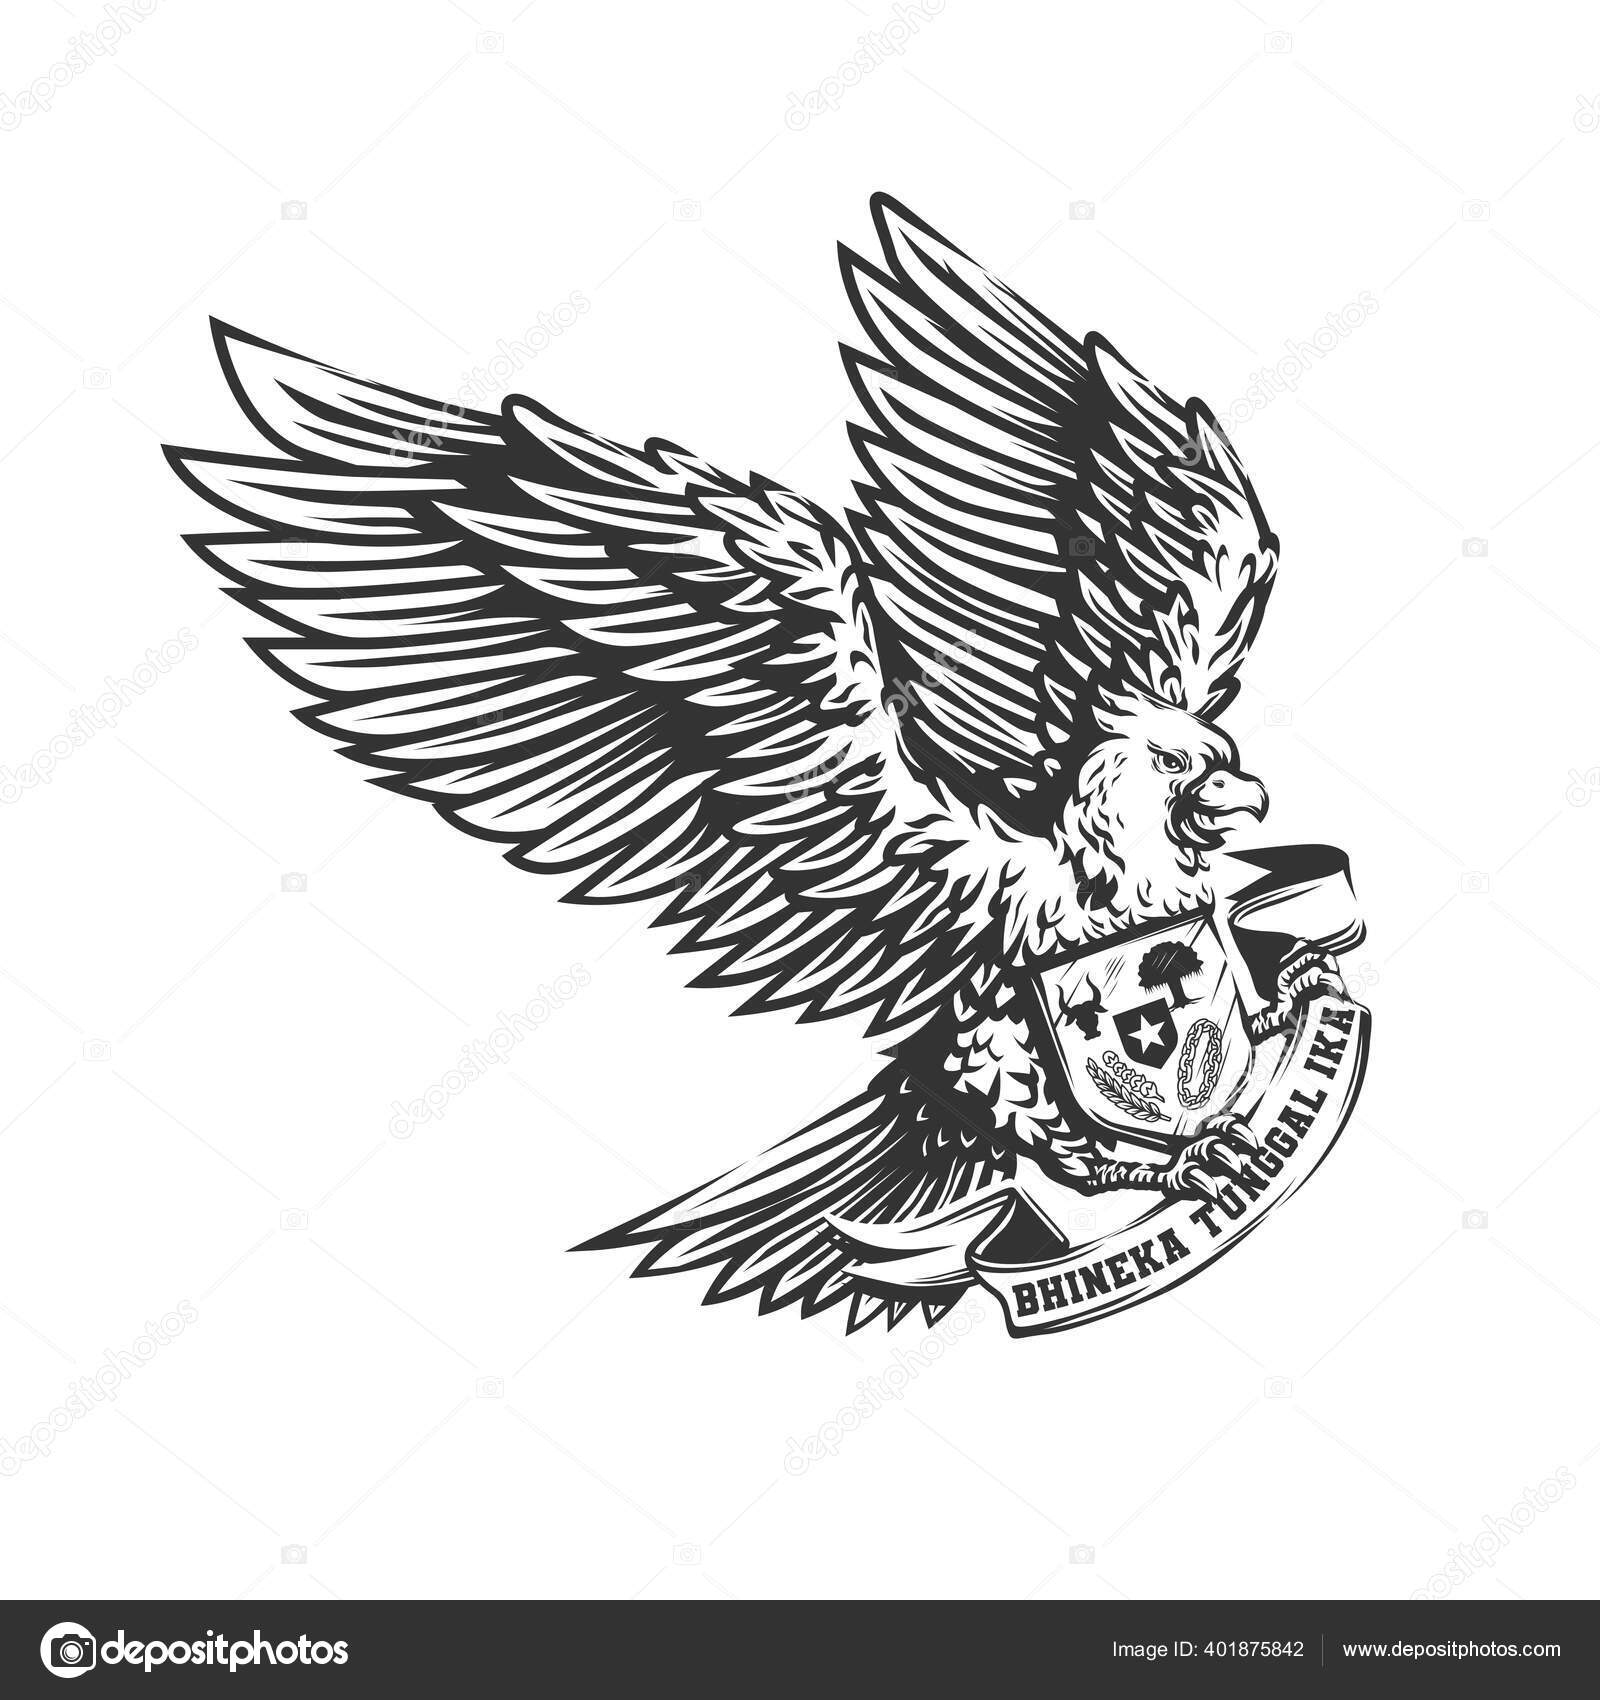 Pancasila Stock Vectors Royalty Free Pancasila Illustrations Depositphotos